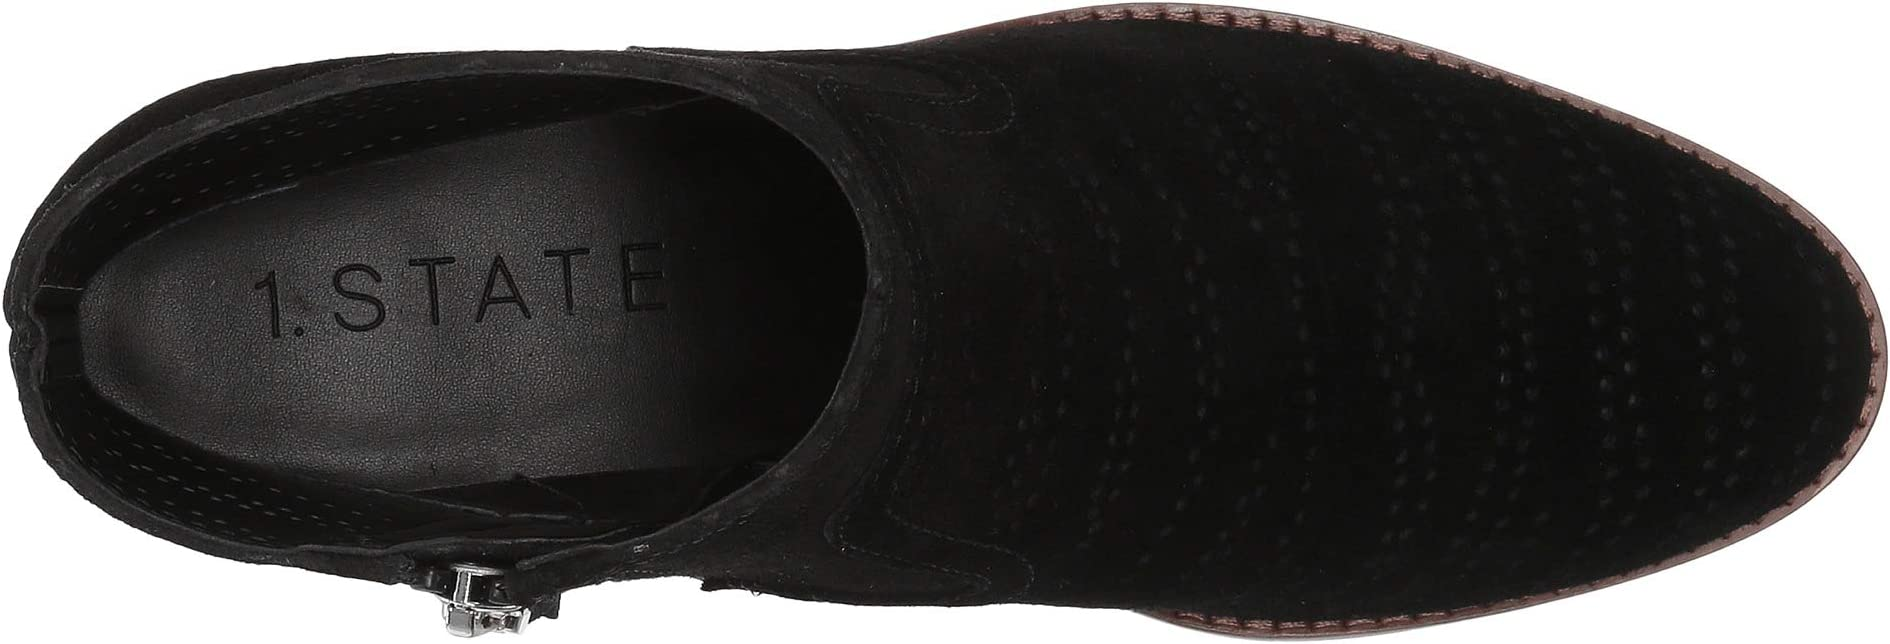 1.STATE Renna   Women's shoes   2020 Newest